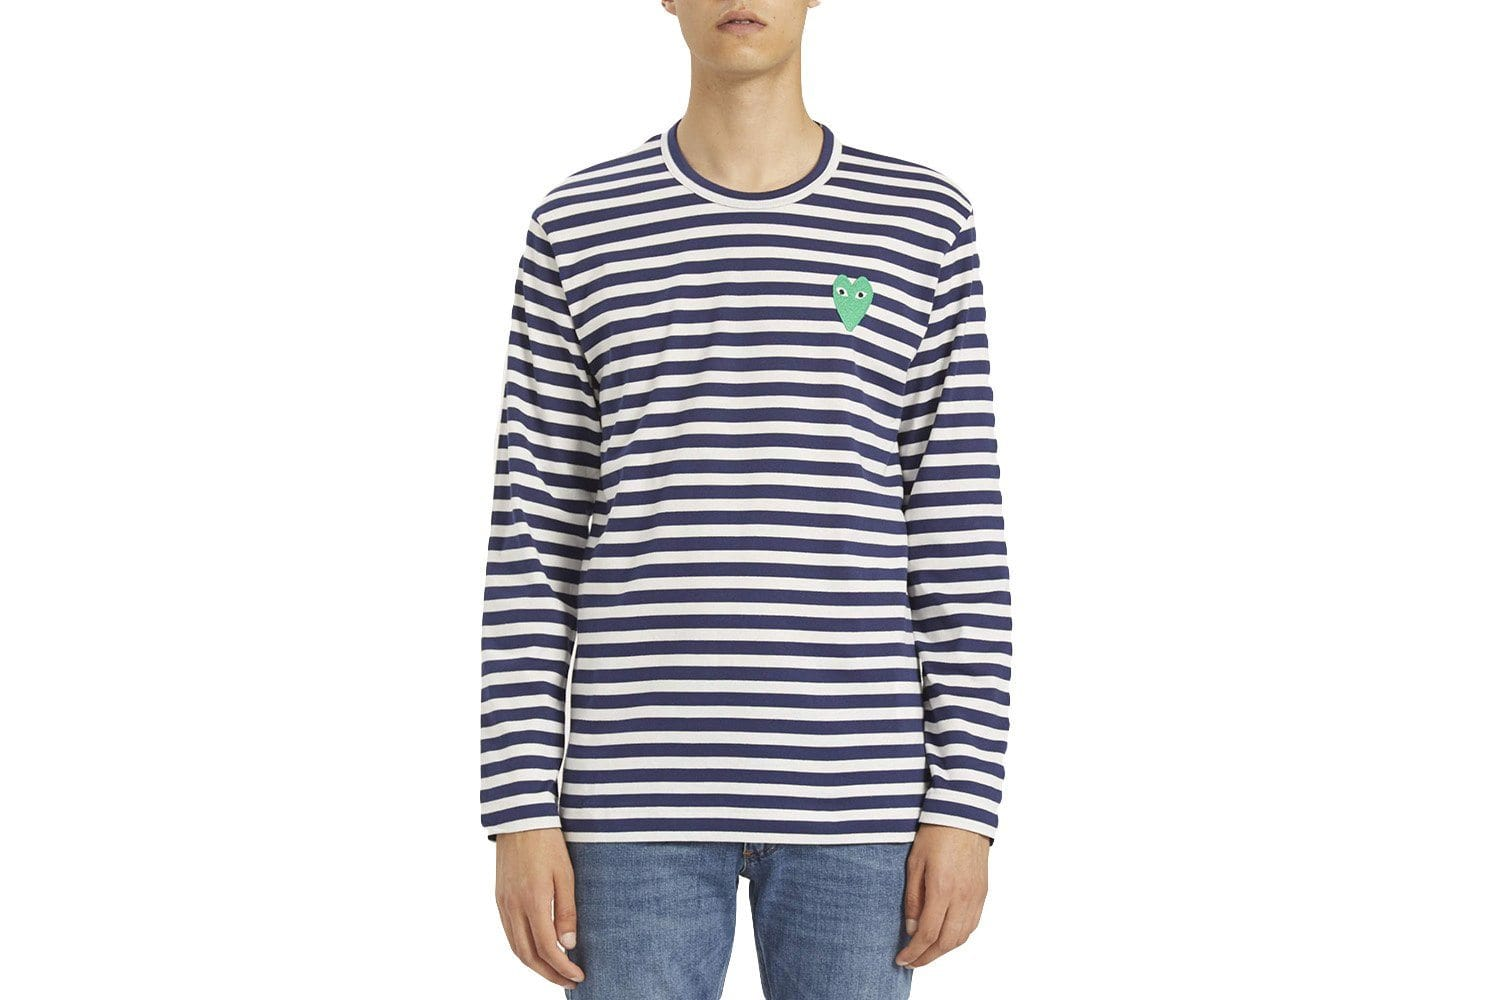 NAVY STRIPE GREEN STRETCH HEART MENS SOFTGOODS COMME DES GARCONS NAVY/WHITE L